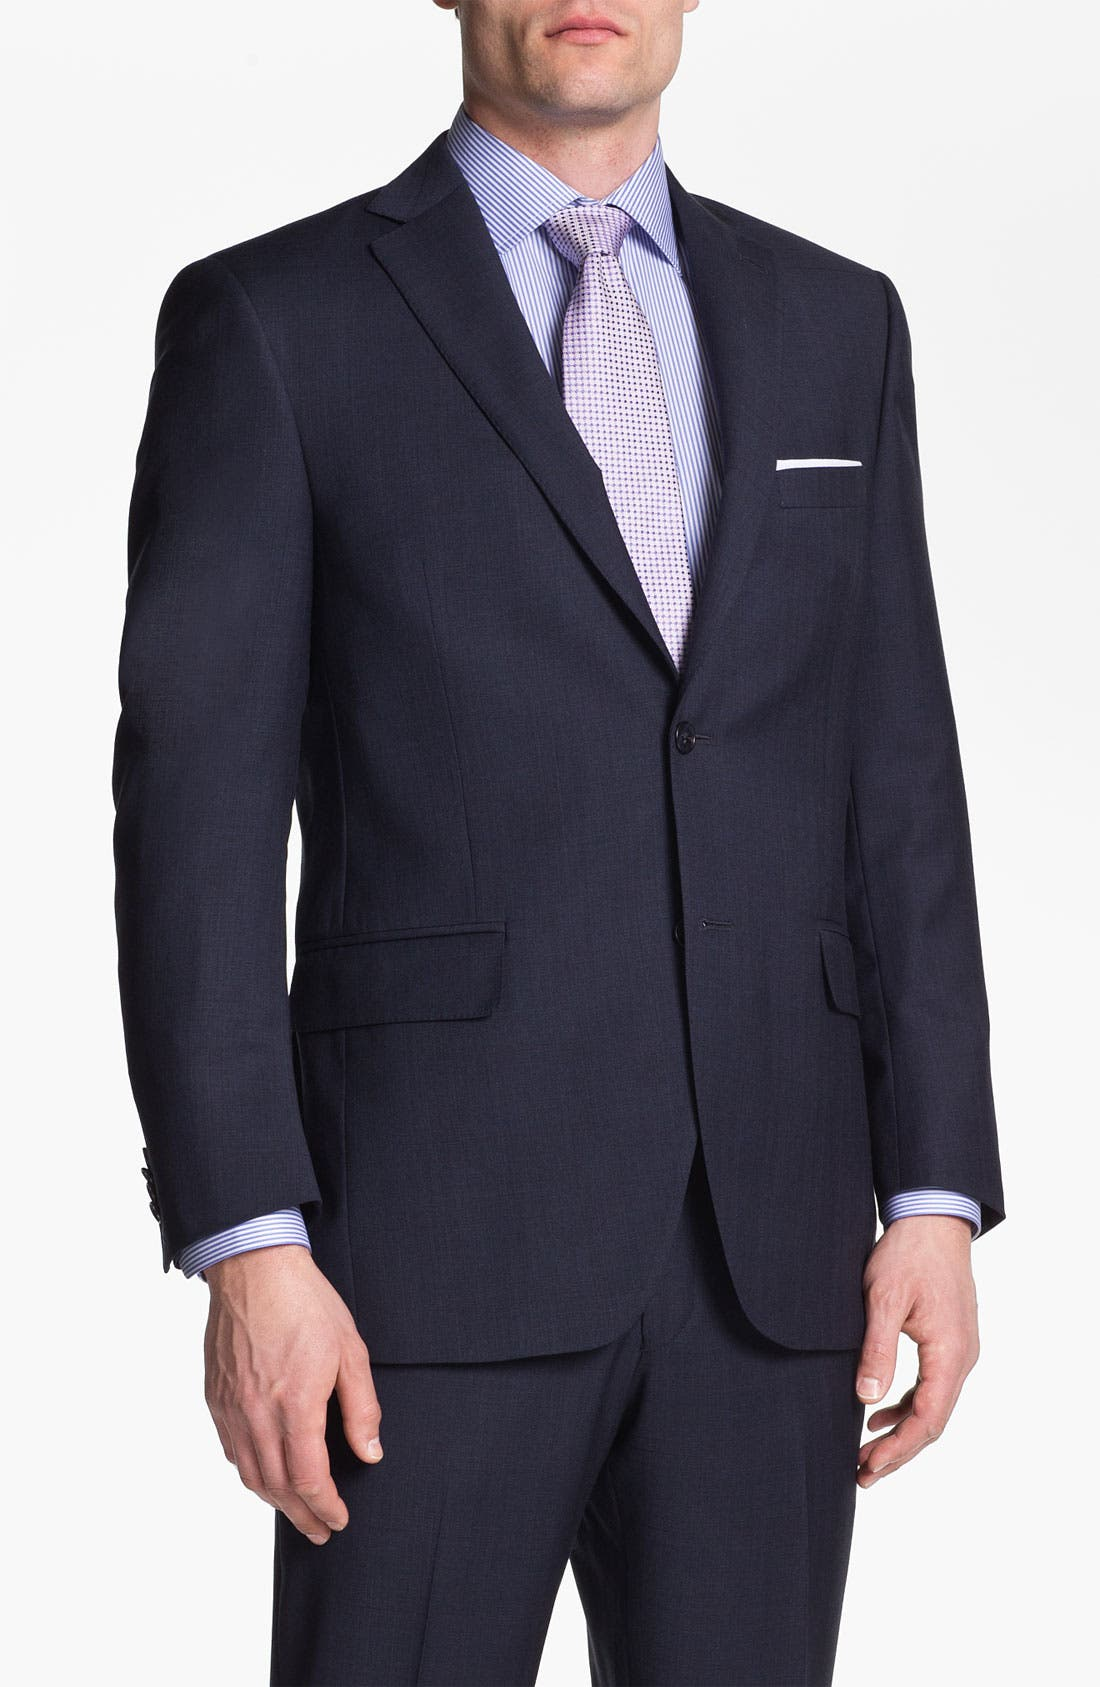 Main Image - Peter Millar Wool Suit